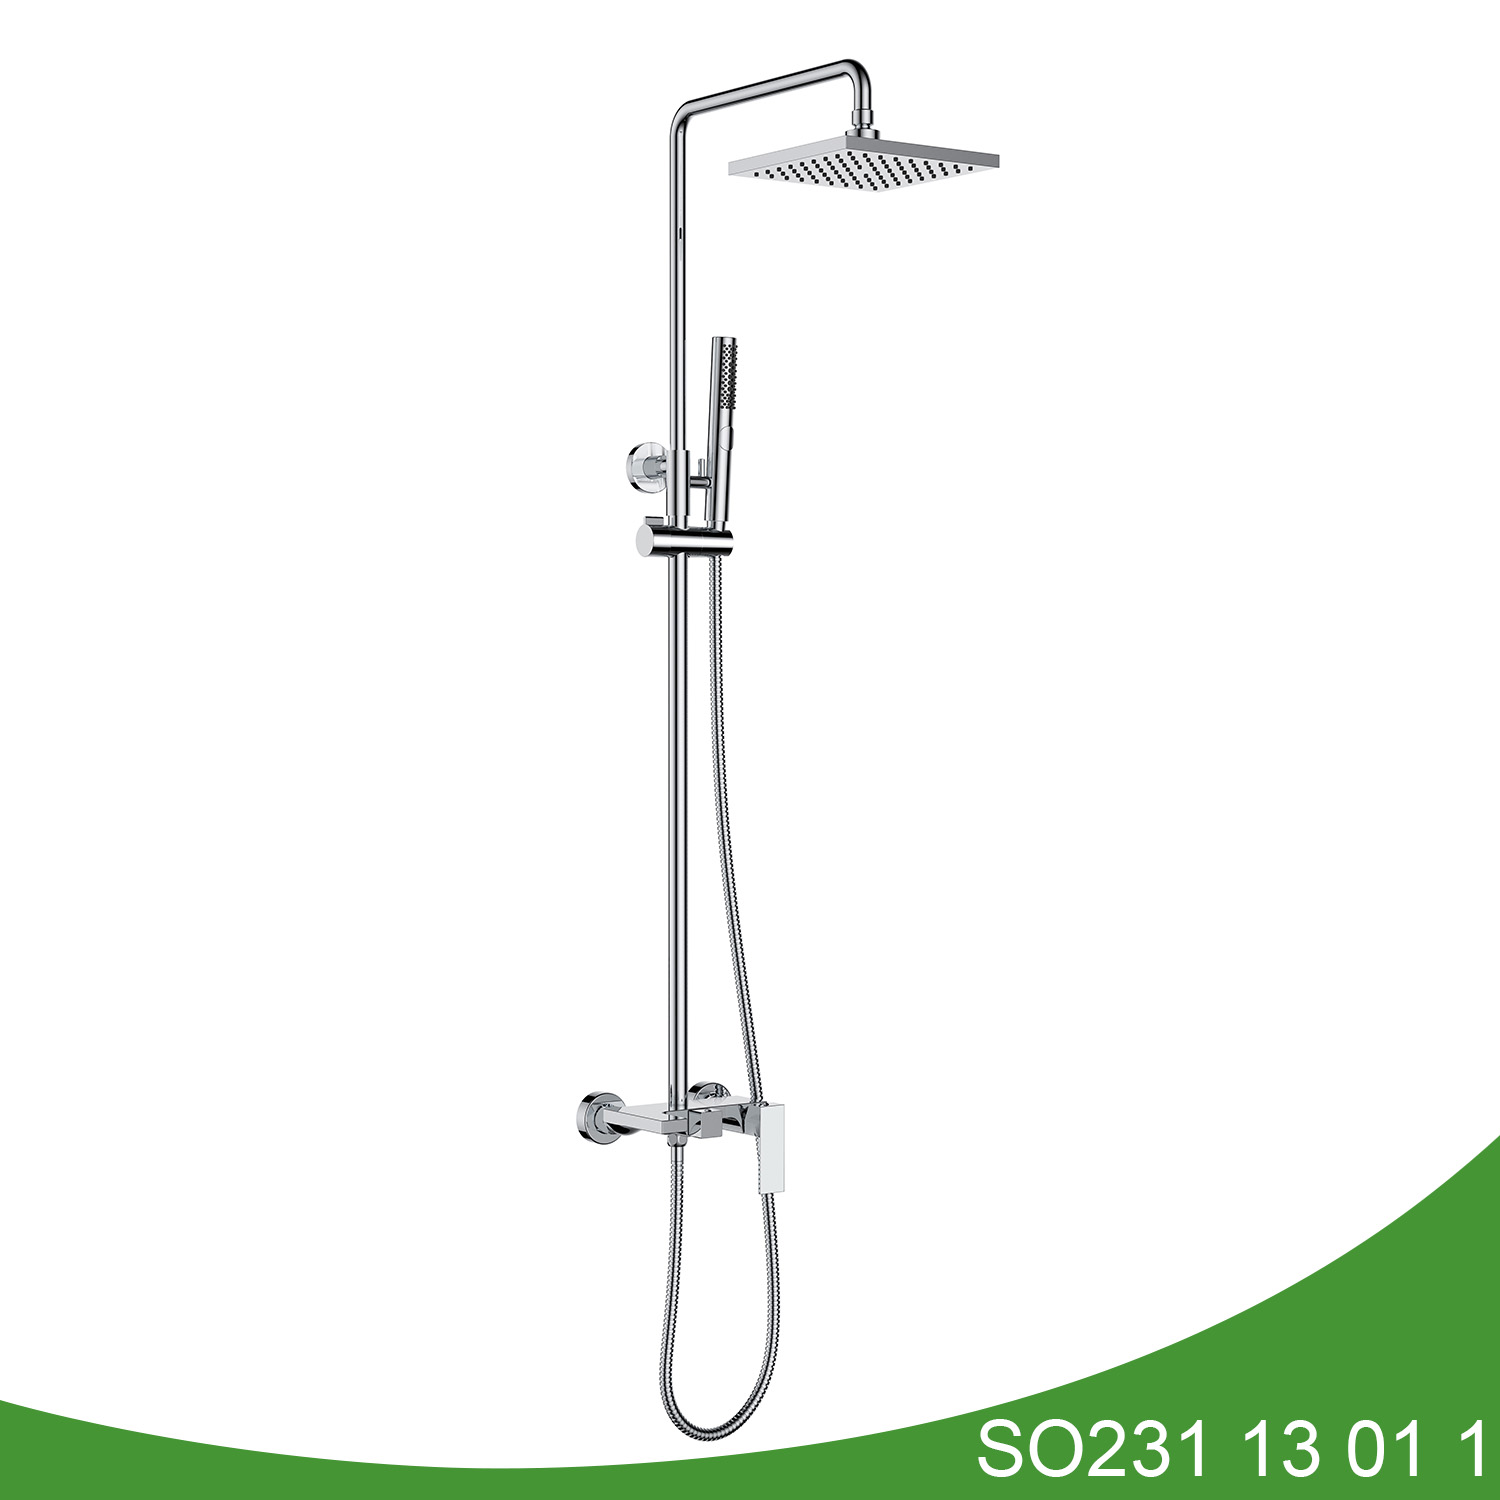 3 function exposed shower set SO231 13 12 1